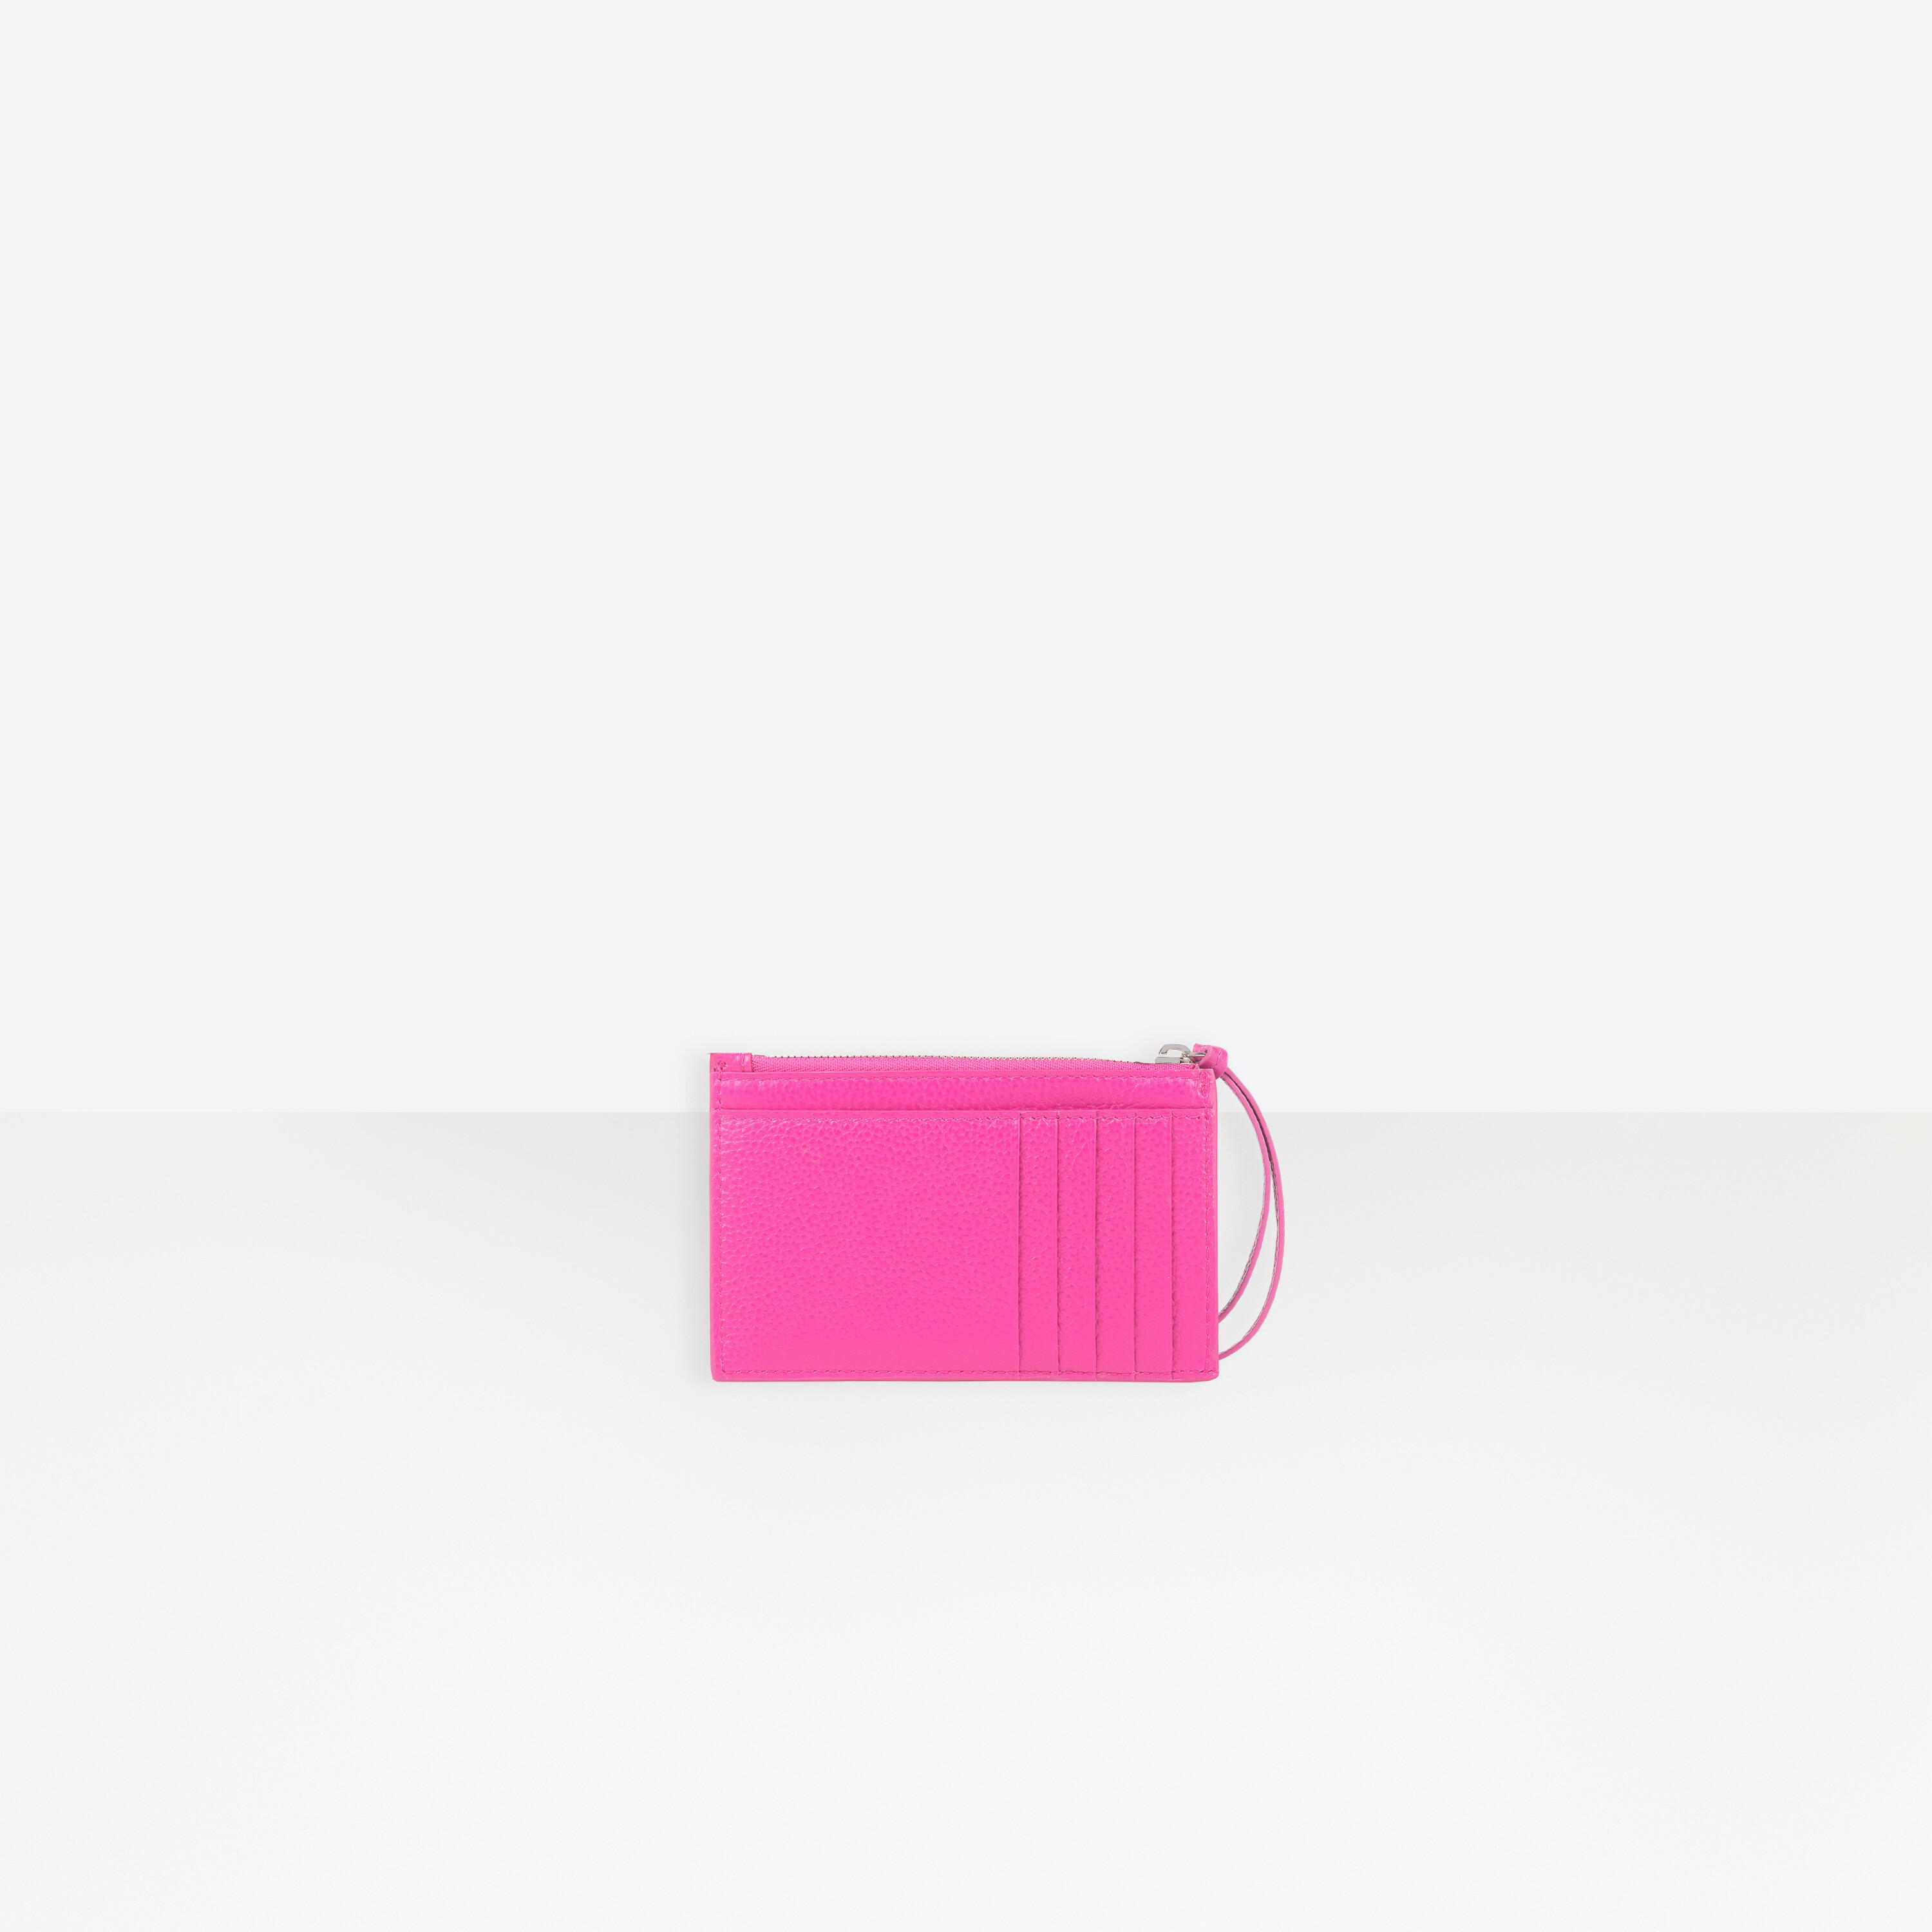 Neo Classic Long Coin And Card Holder 1